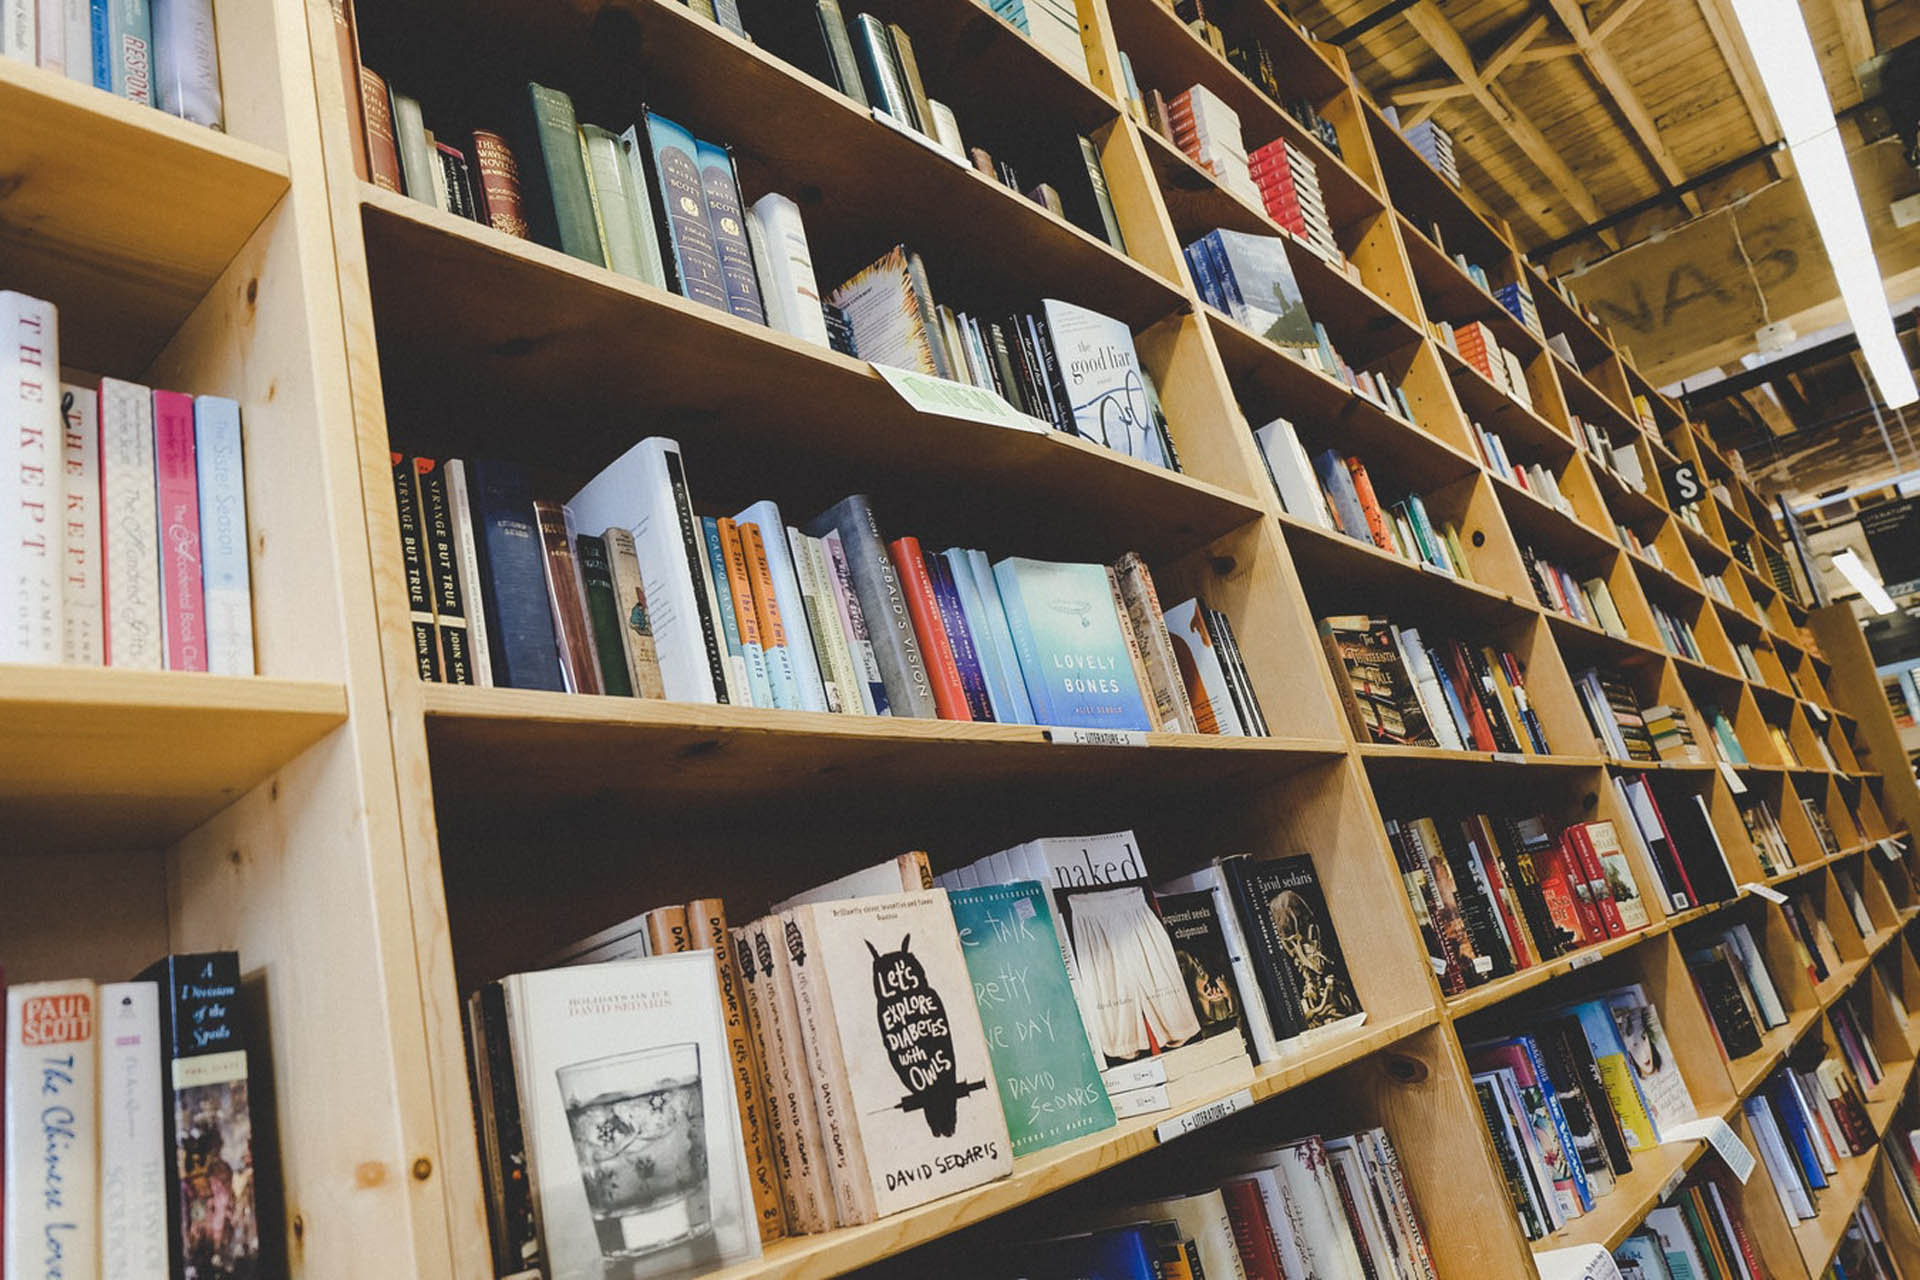 Find out what's going on in a bookshop near you.